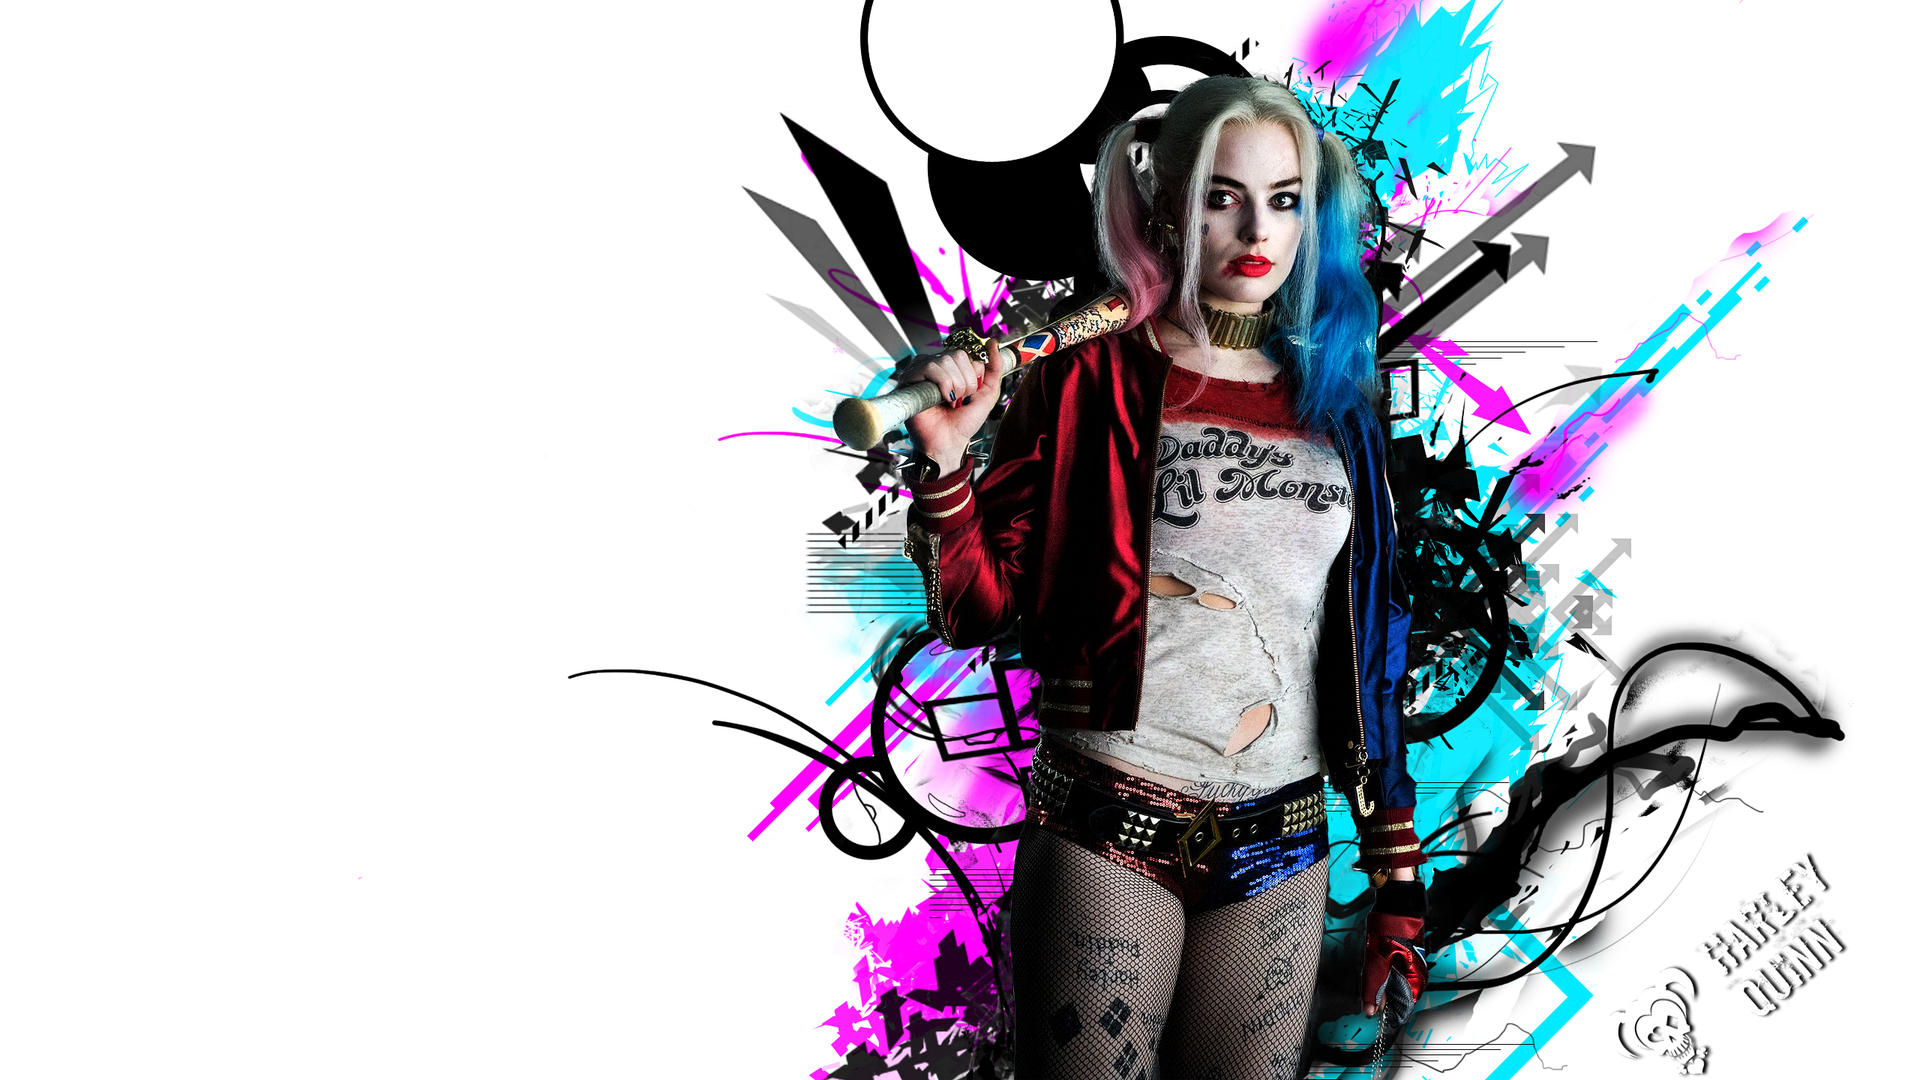 1920x1080 harley quinn hd laptop full hd 1080p hd 4k - Harley quinn hd wallpapers for android ...